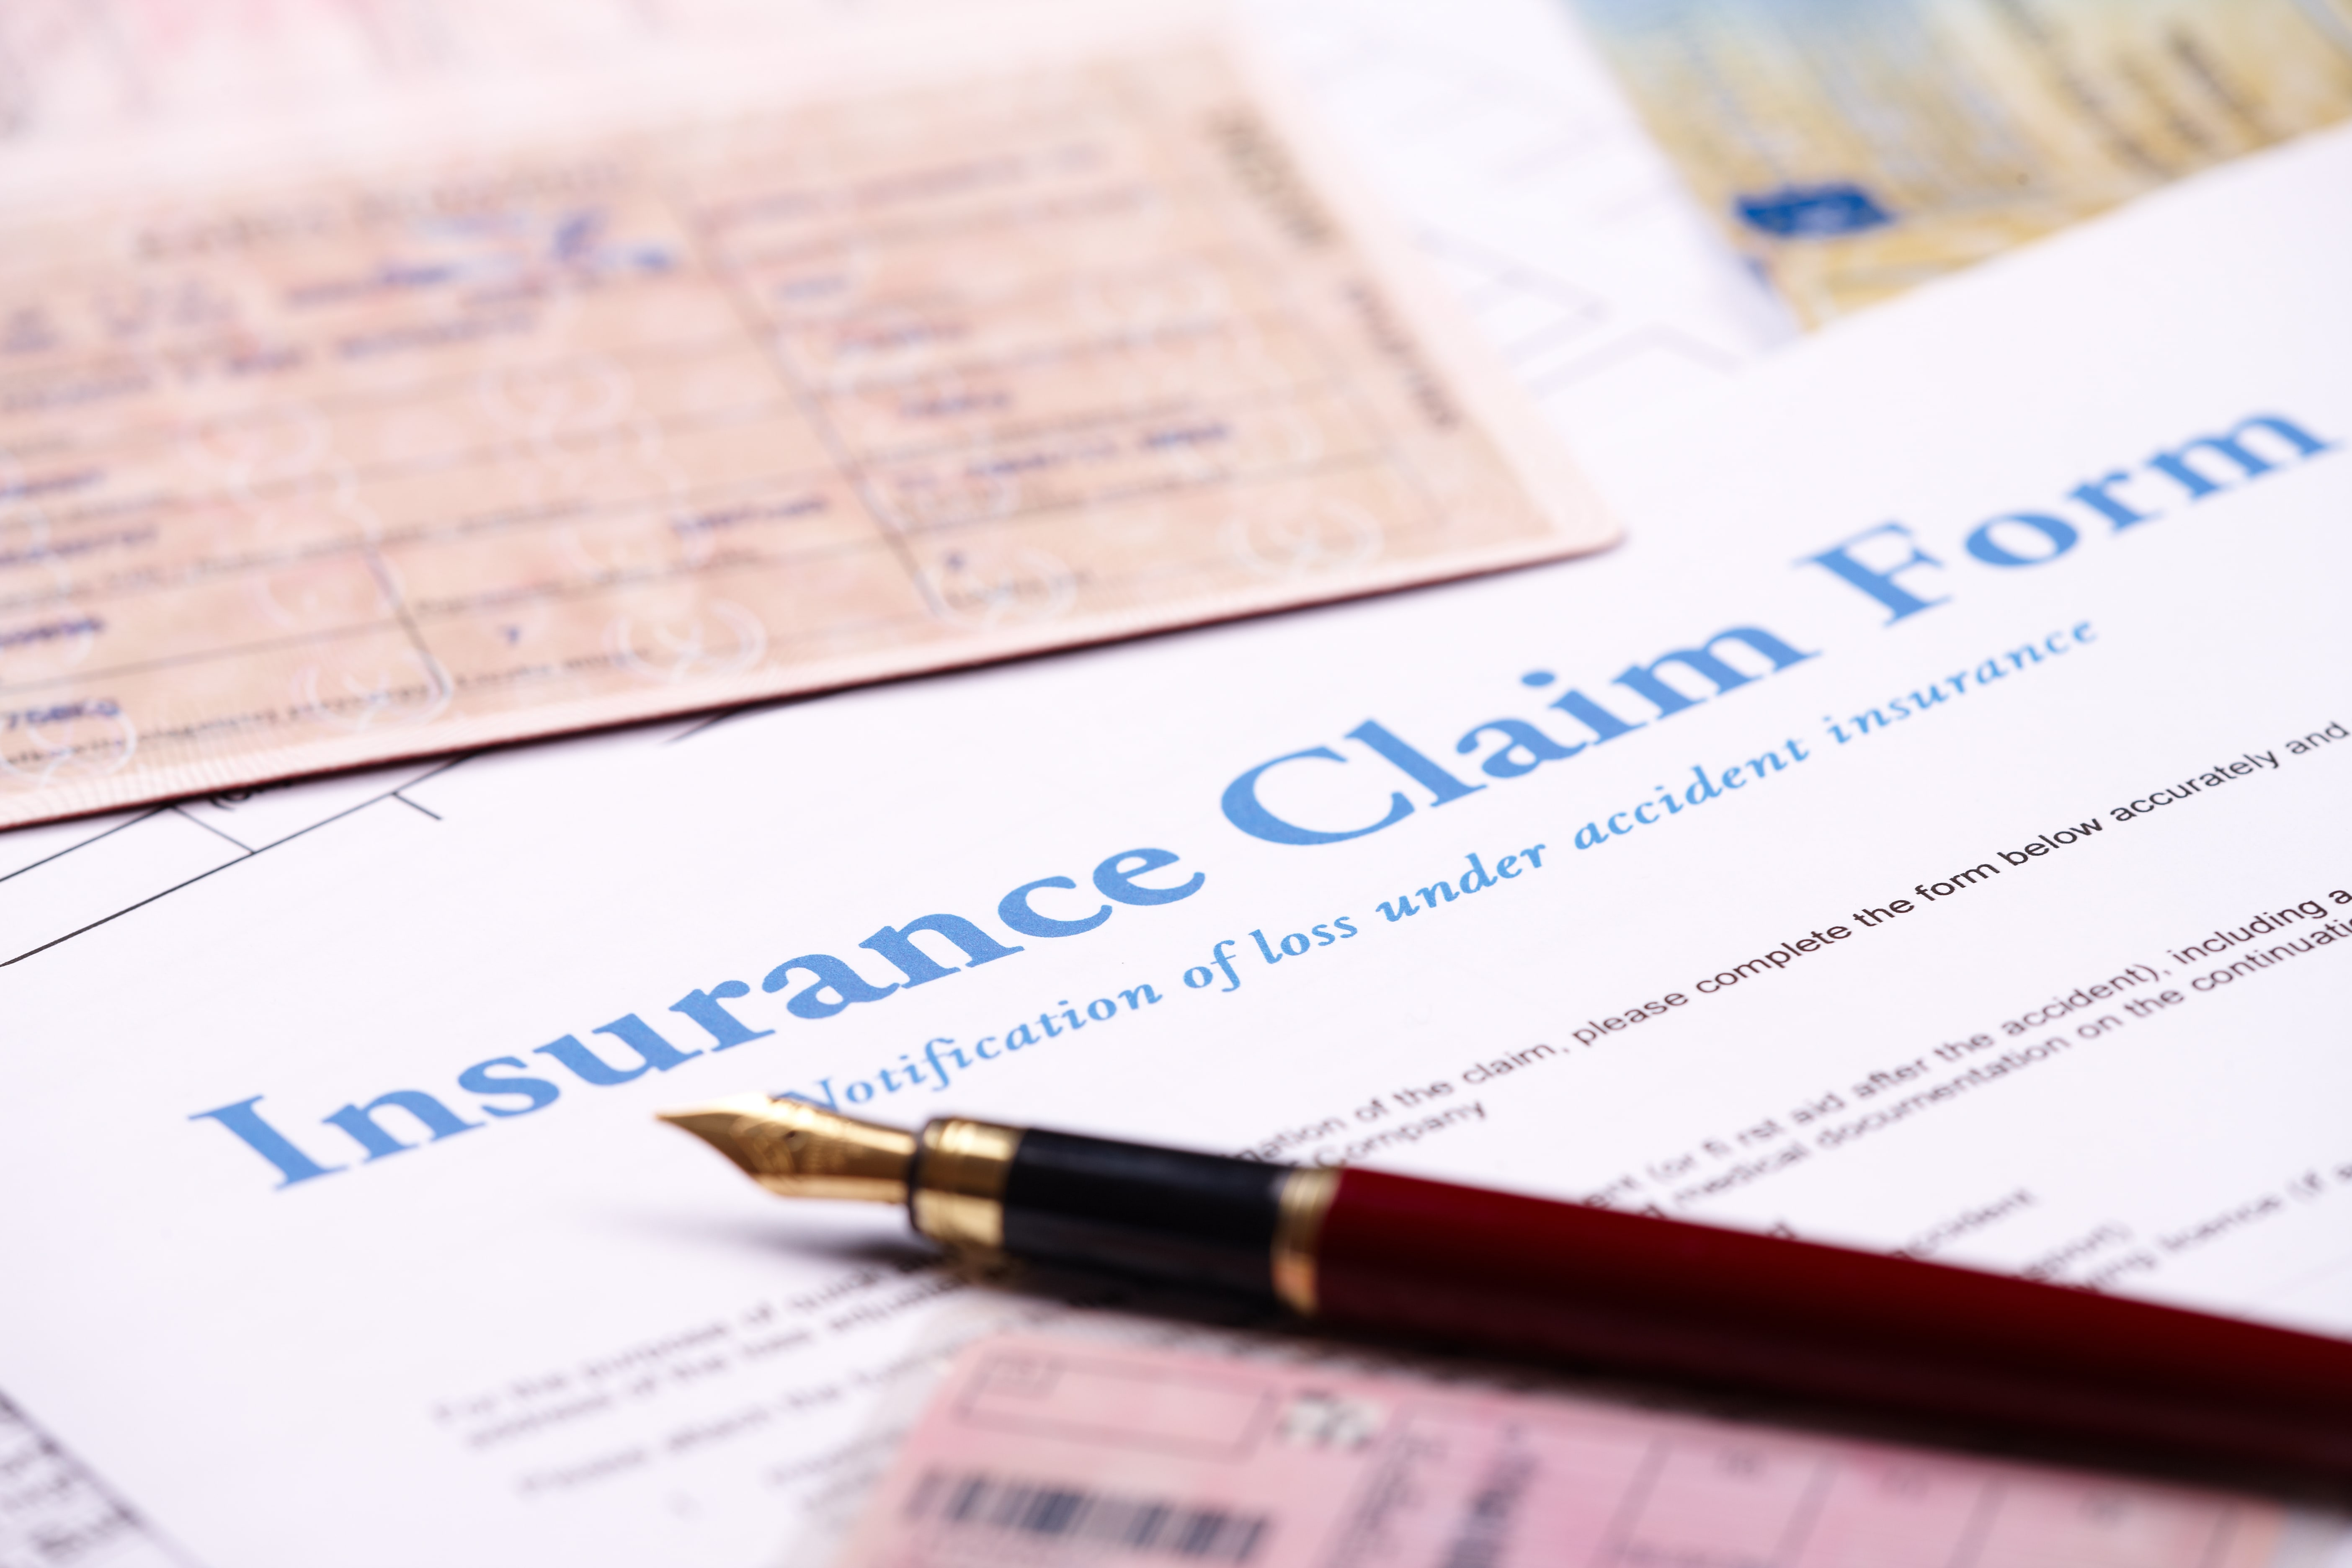 Filing car accident claim form.